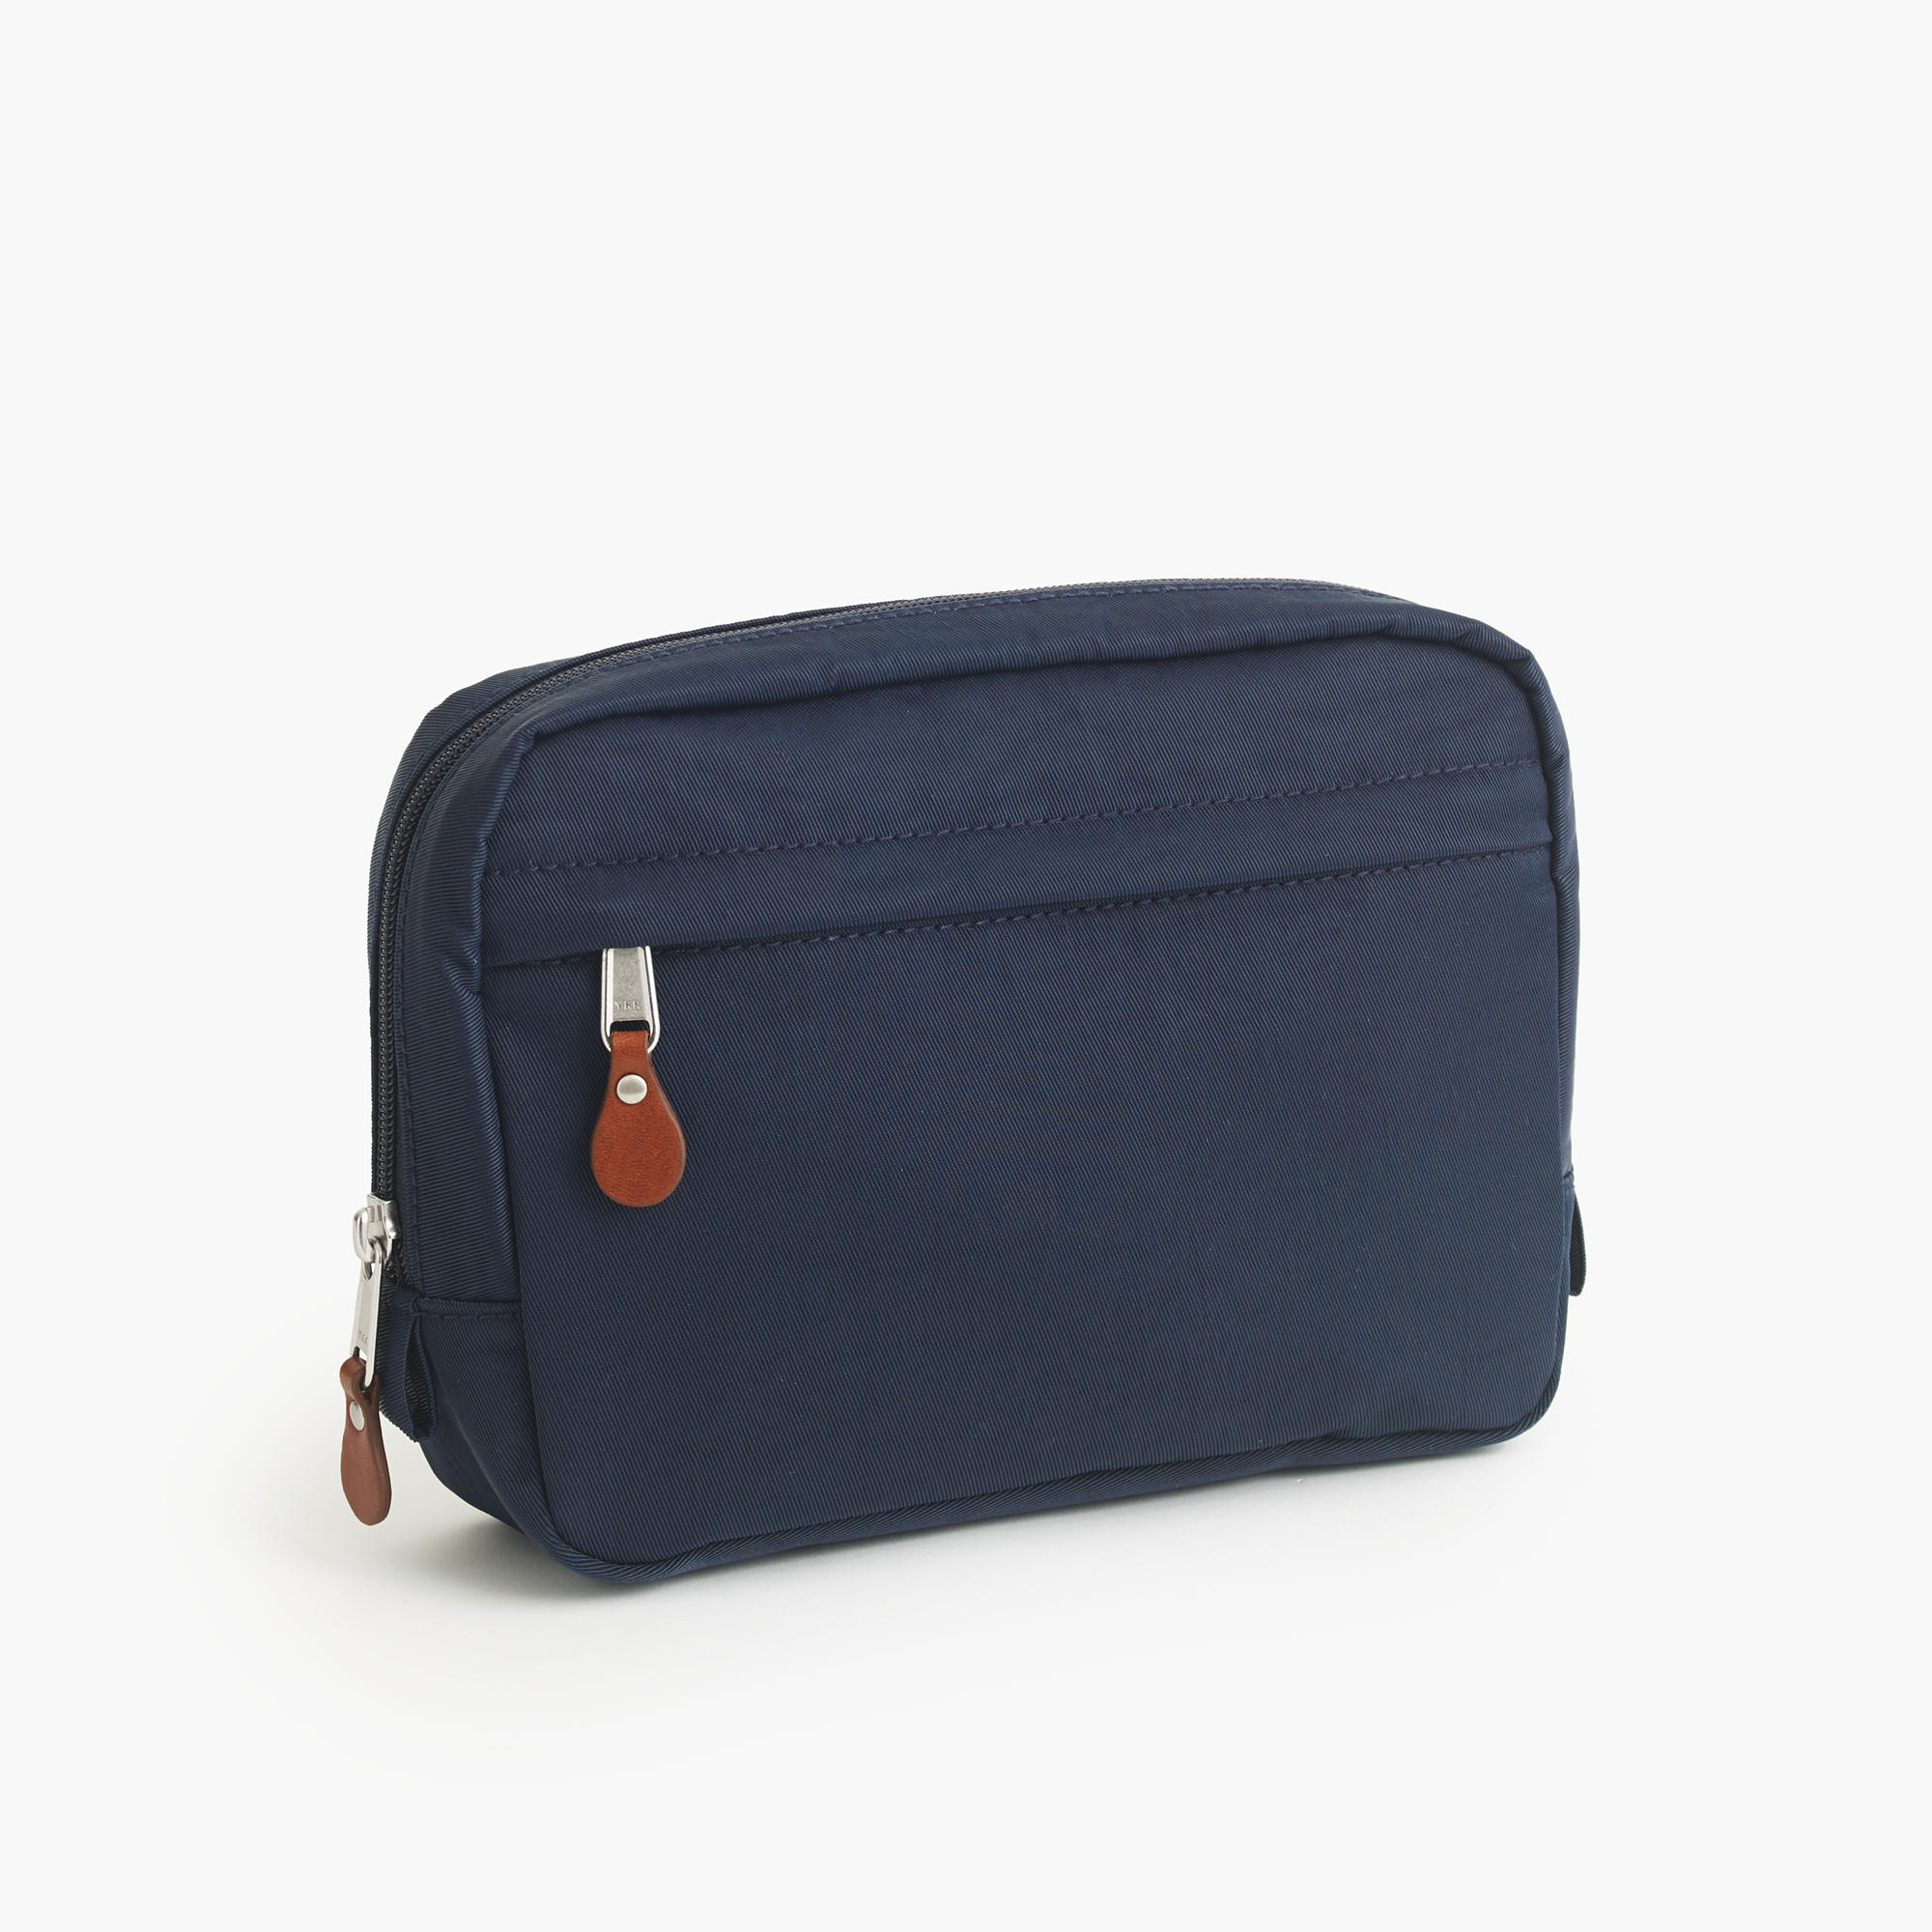 Harwick travel kit, $35 (plus $10 for monogram) at J. Crew.